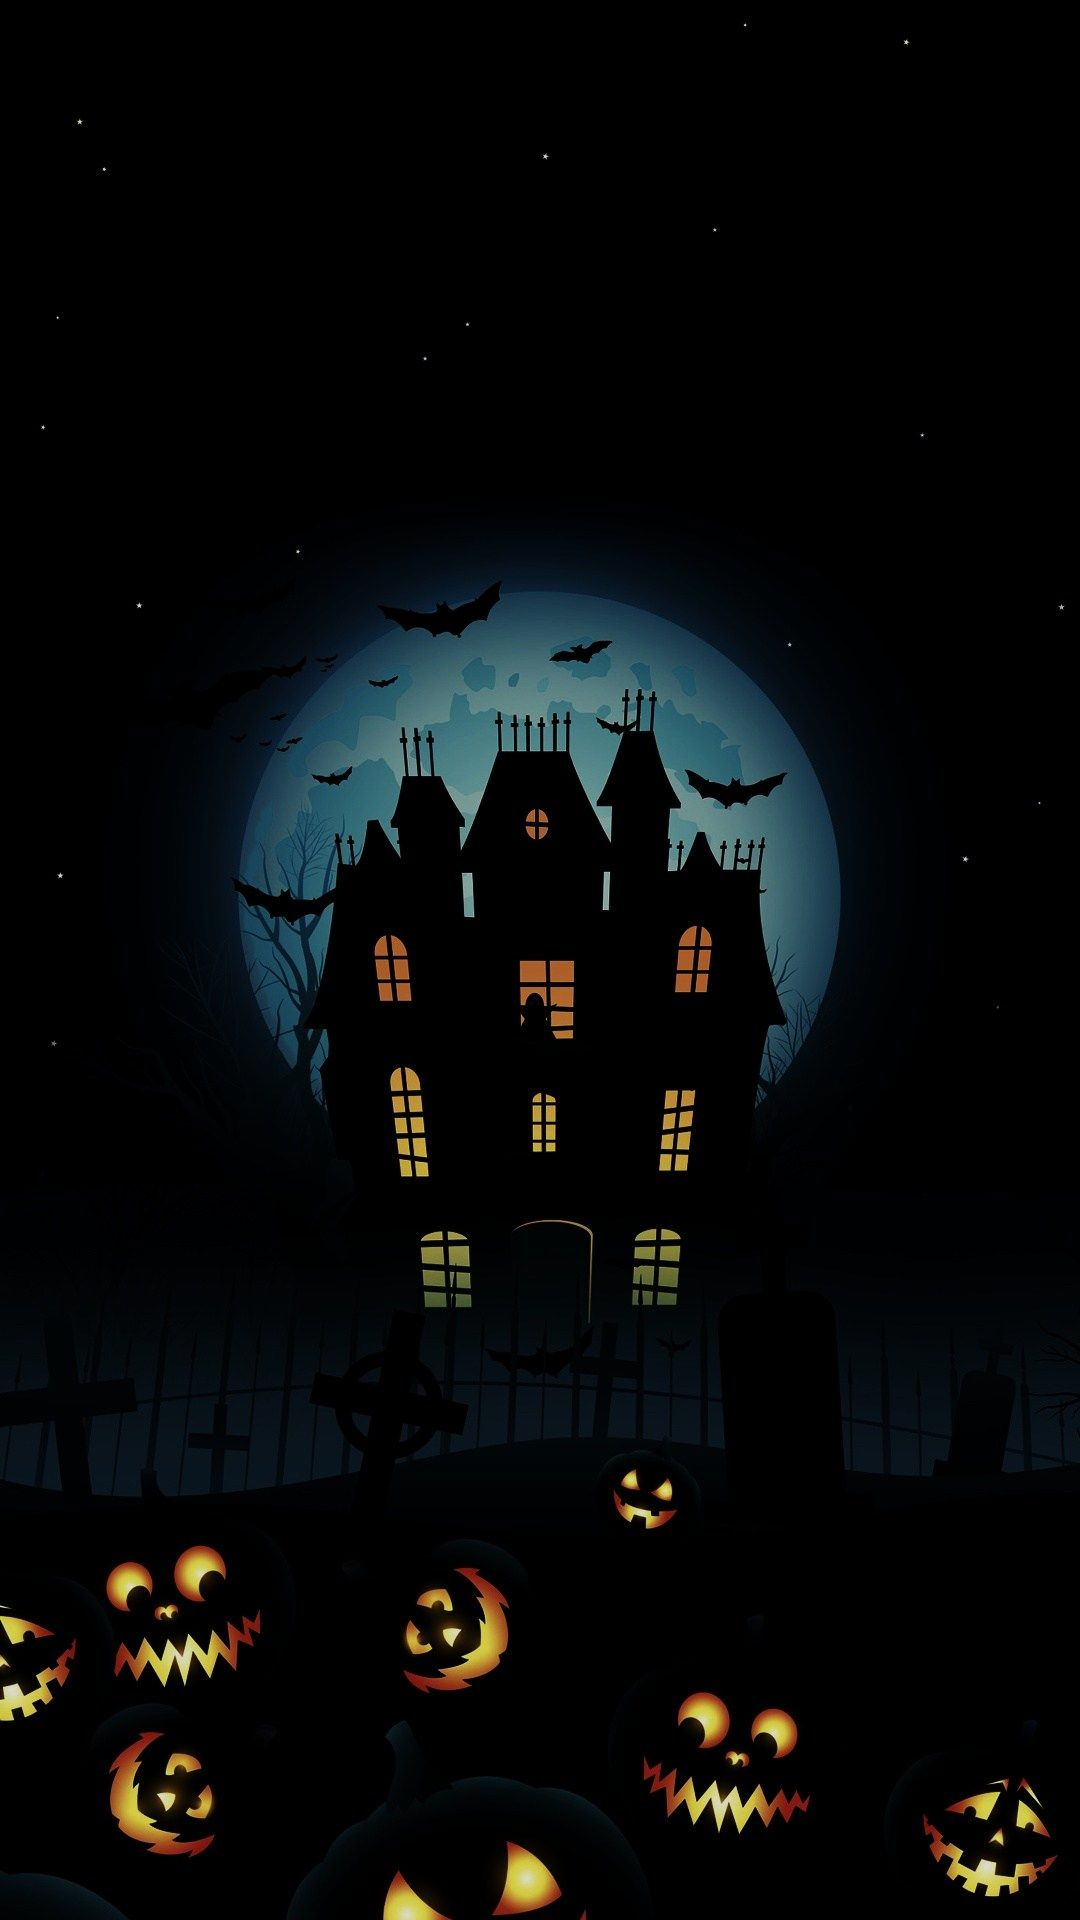 Halloween Wallpaper Graphic 2020 iPhone 11 Pro Wallpaper in 2020 | Halloween wallpaper, Halloween